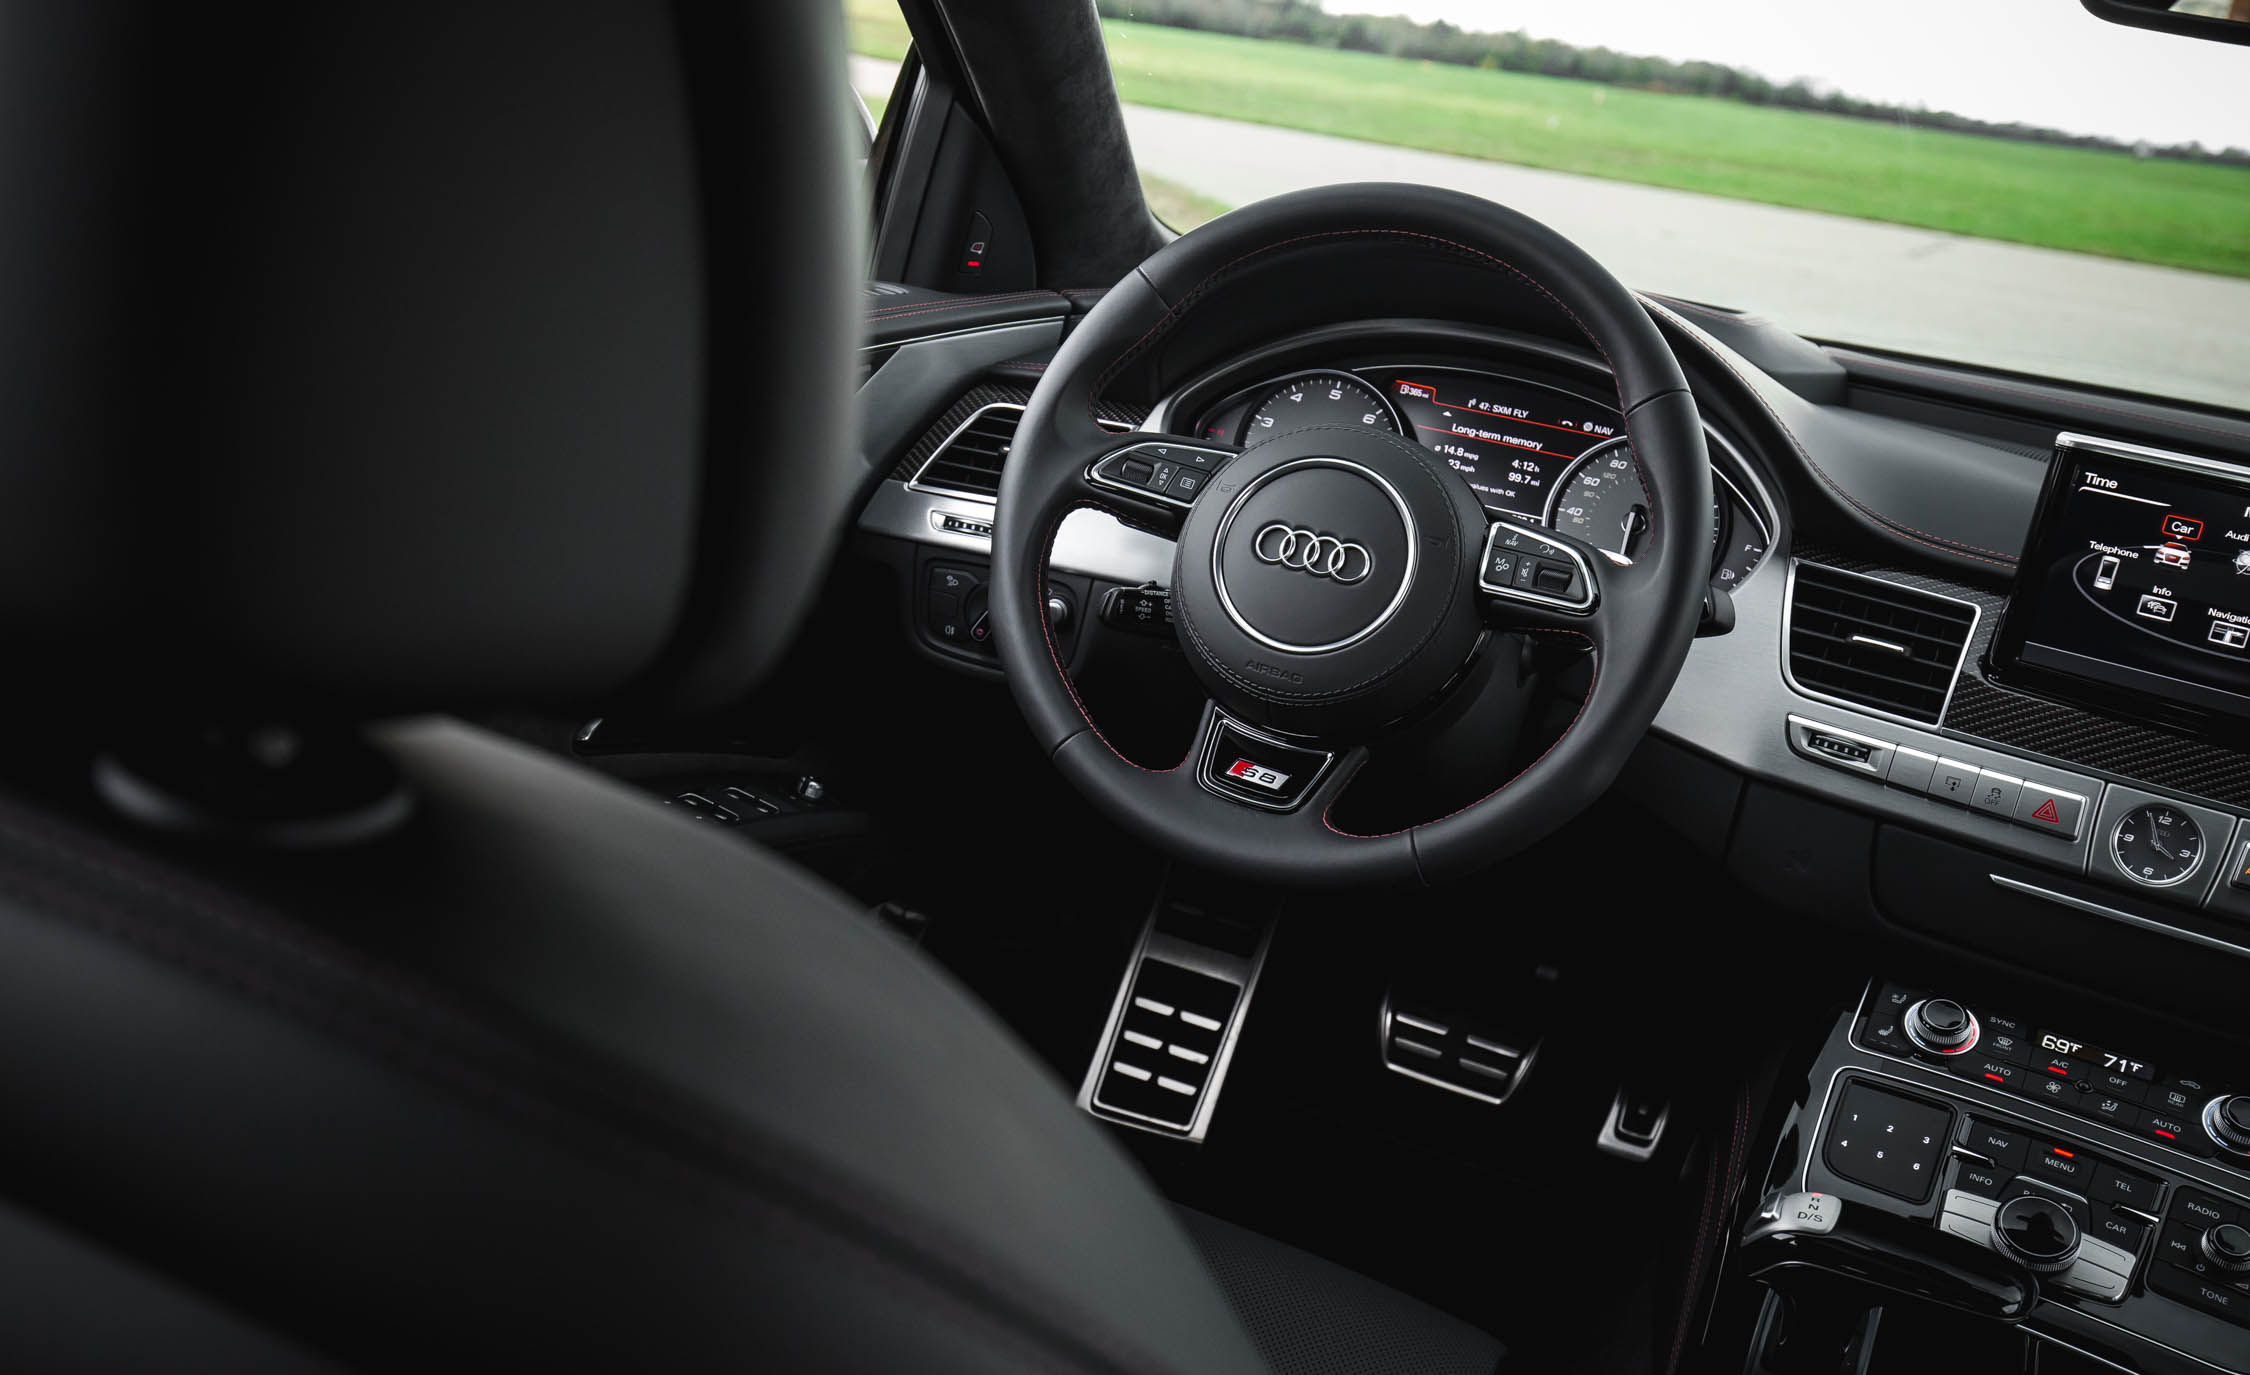 2017 Audi S8 Plus Interior Steering Wheel (Photo 21 of 36)